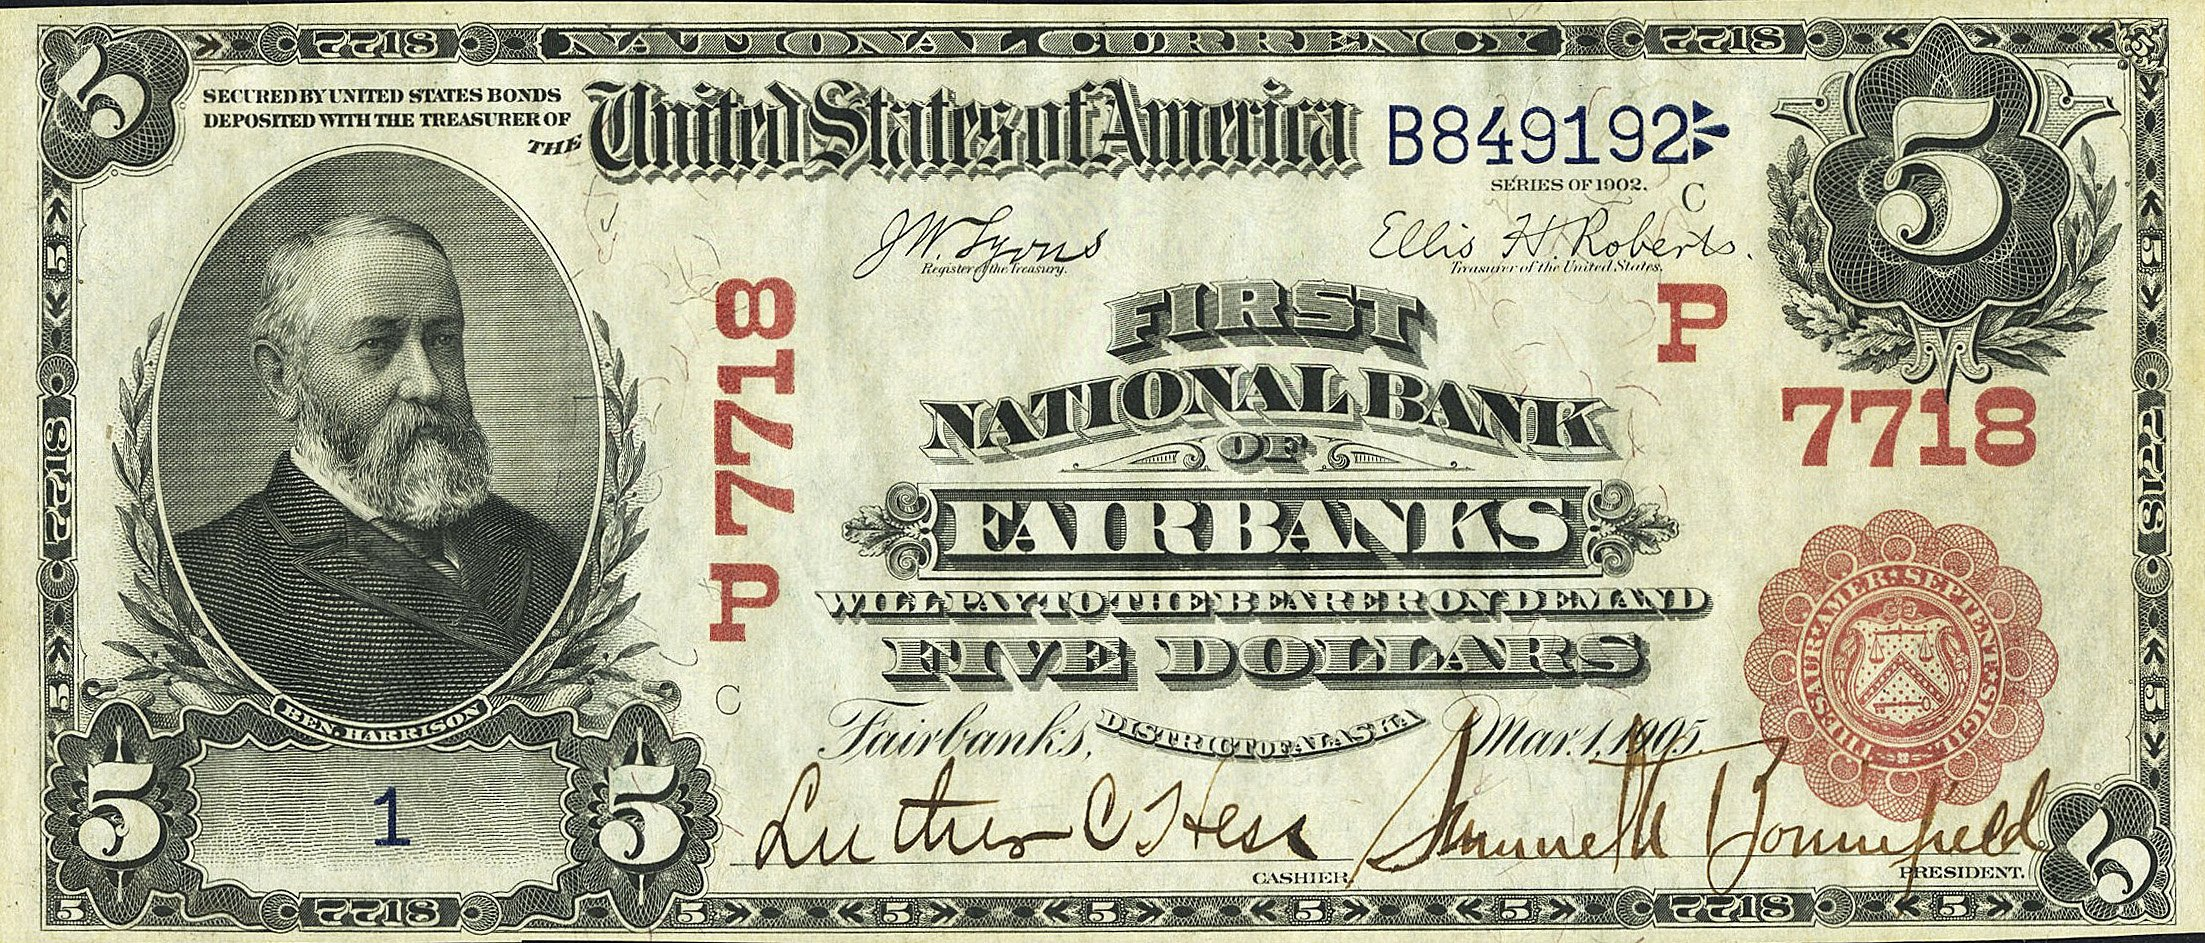 Rare Century Old 5 Bill Issued In Fairbanks Alaska